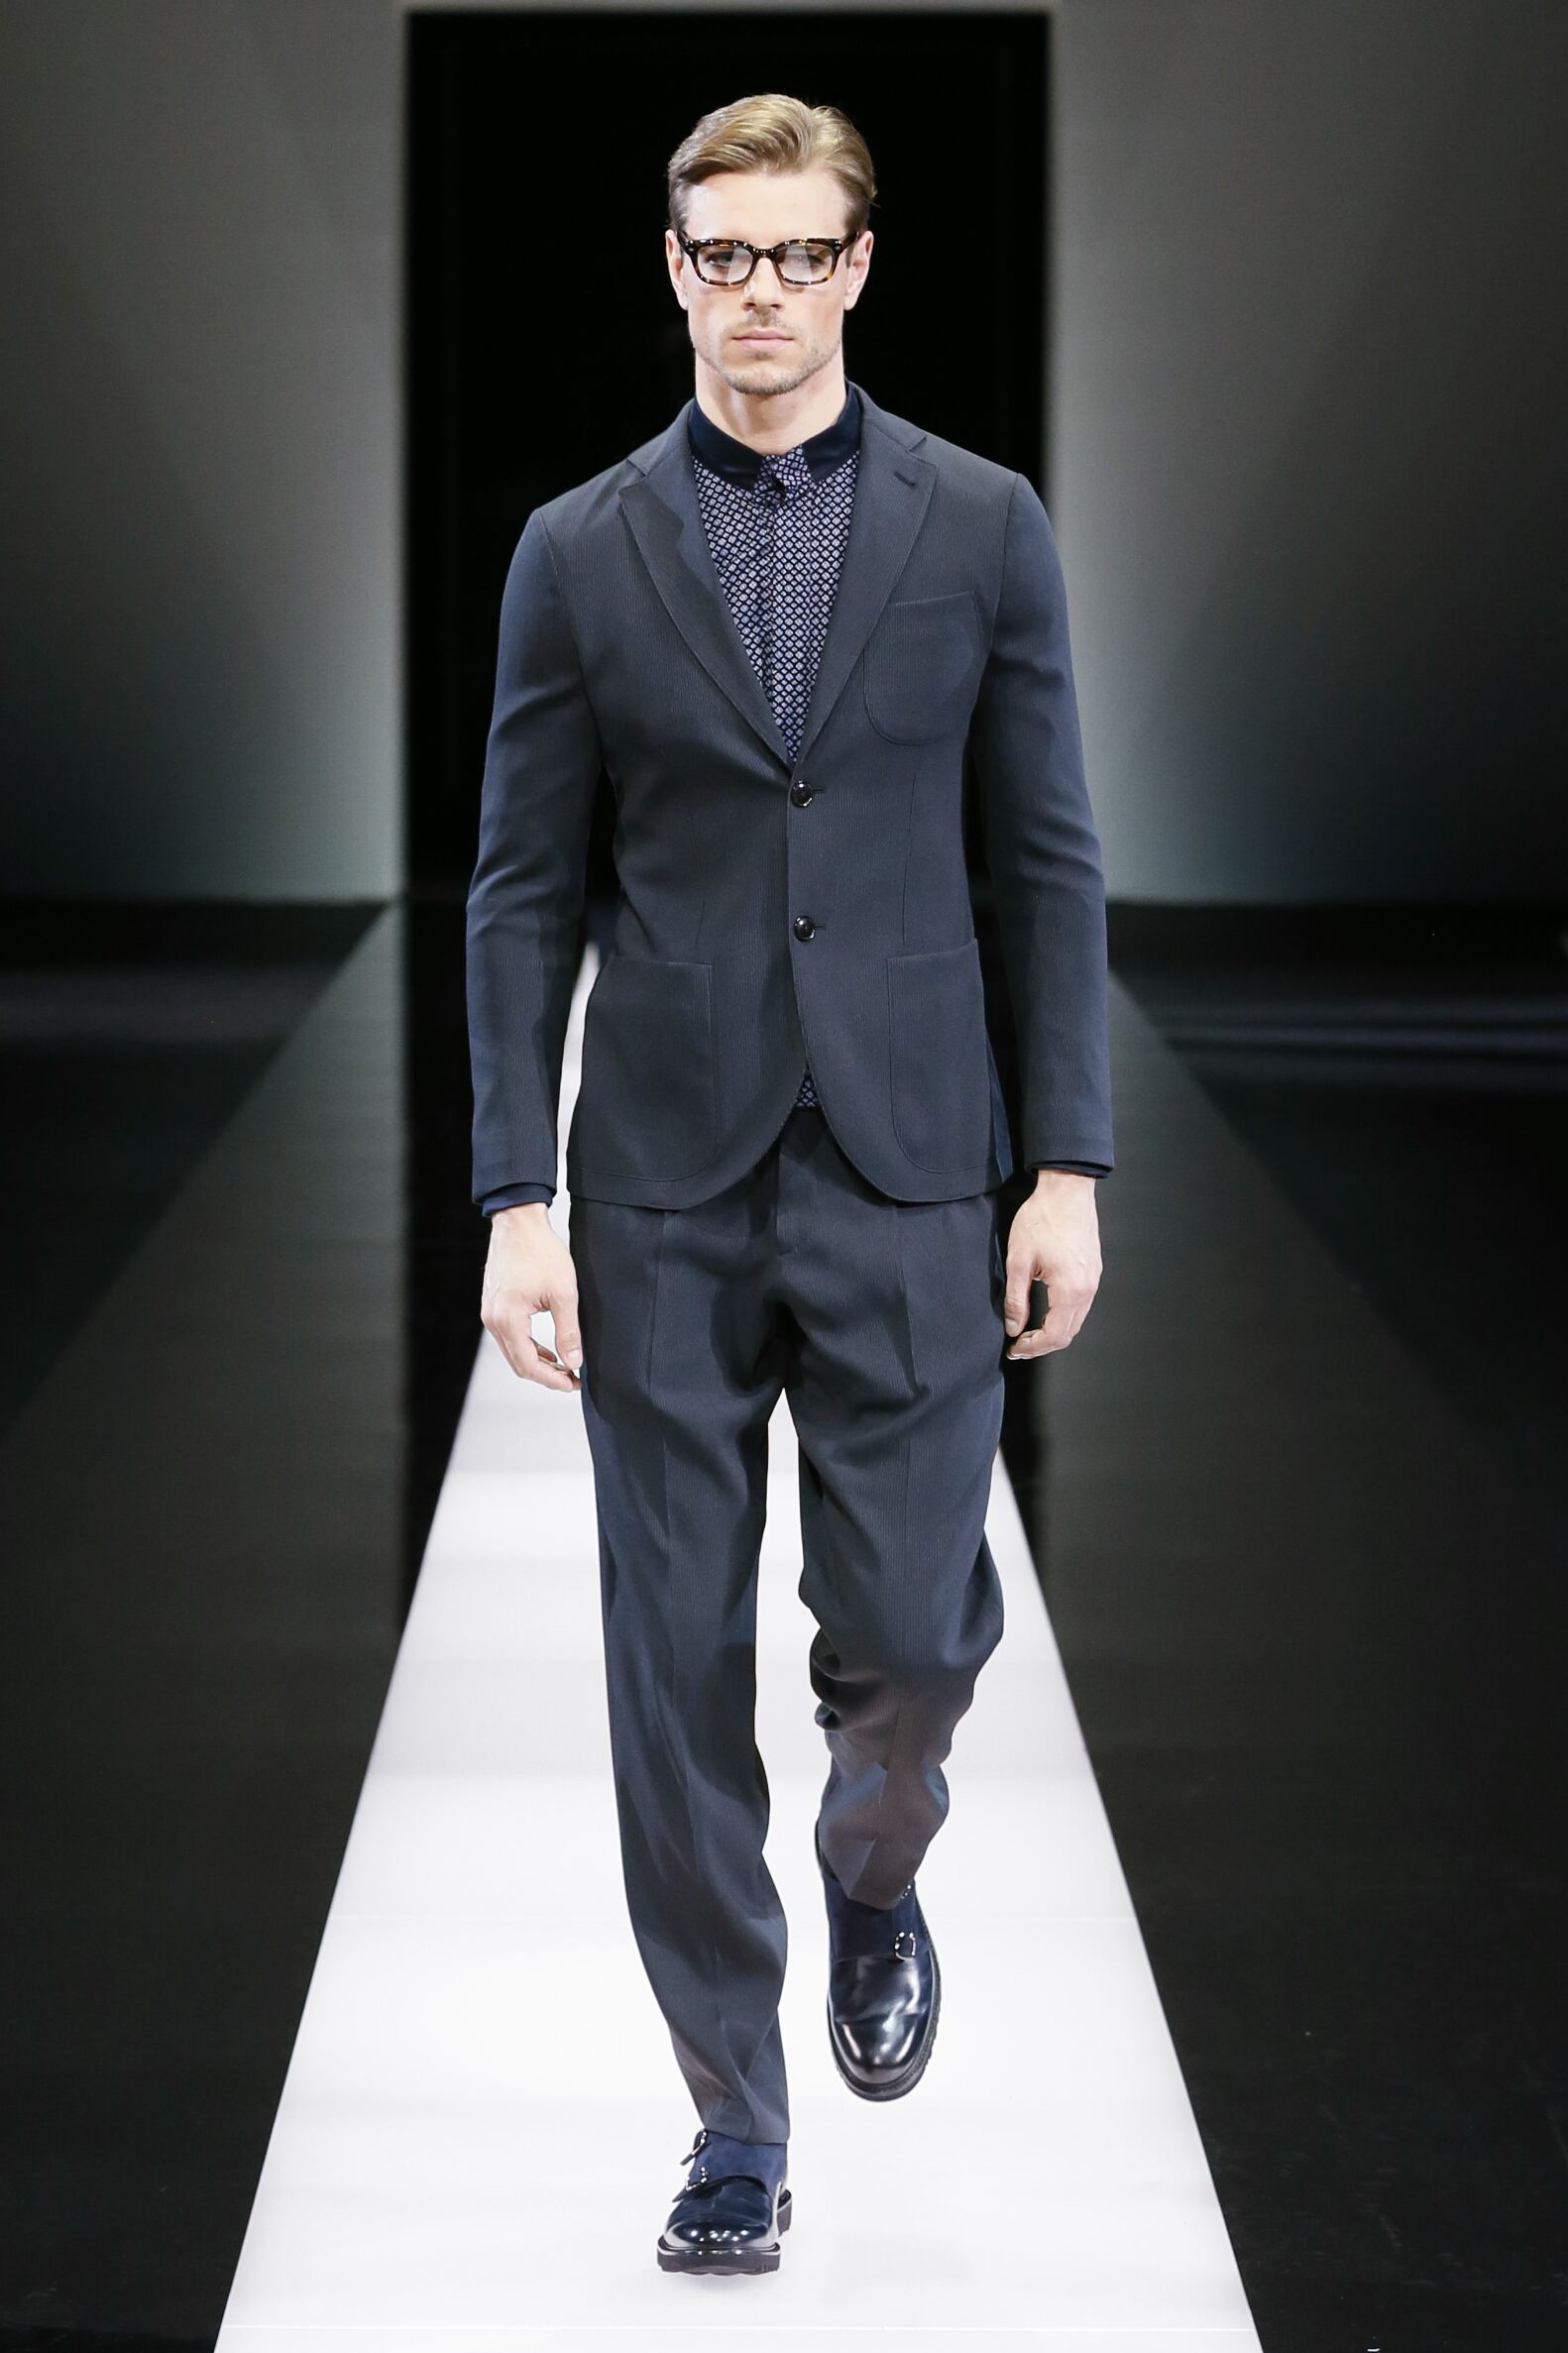 Giorgio Armani Collection Men's FW 2015 16 Fashion Show